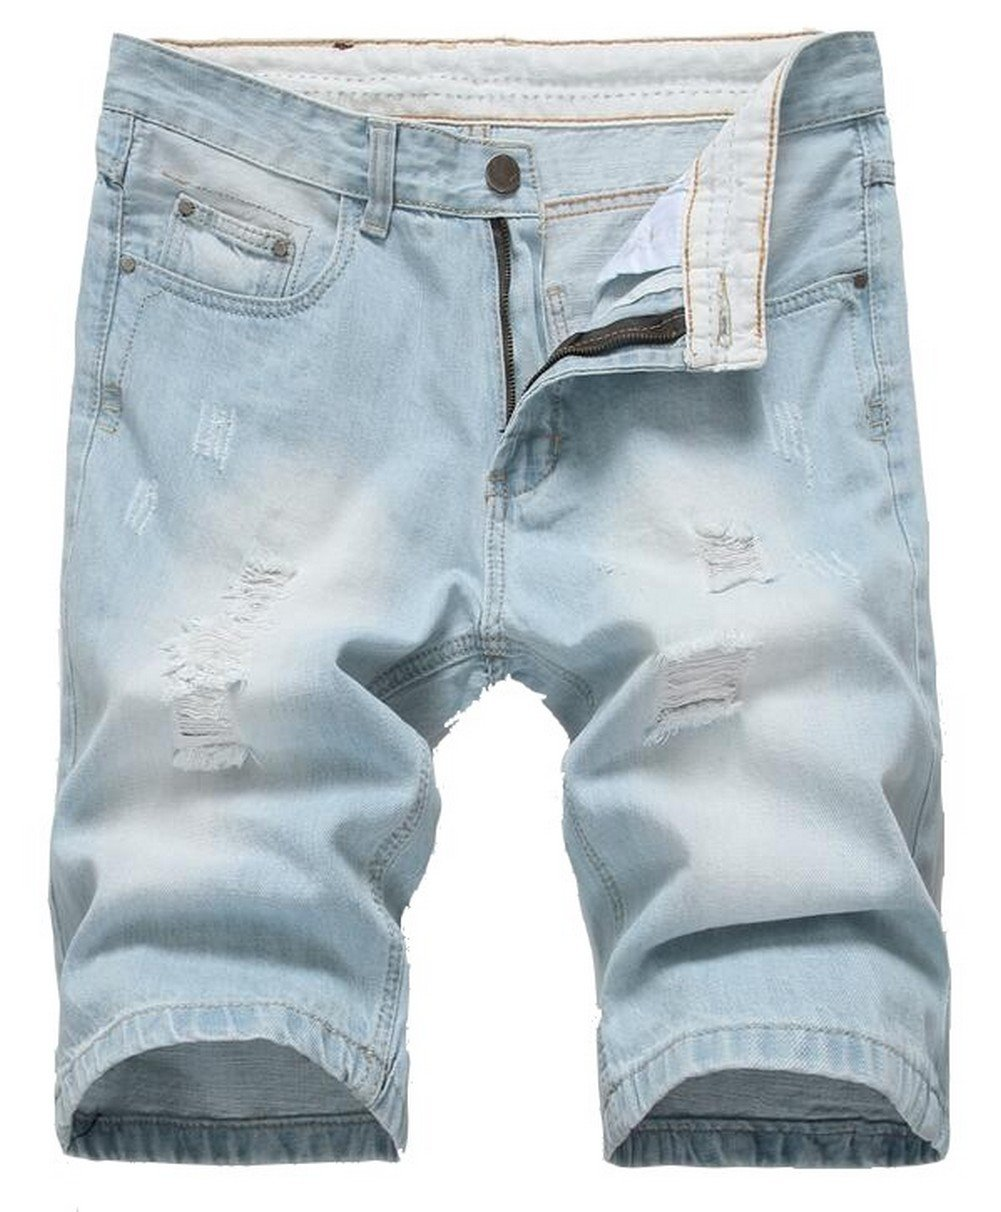 Jinmen Mens Regular Fit Ripped Distressed Straight Denim Short with Hole